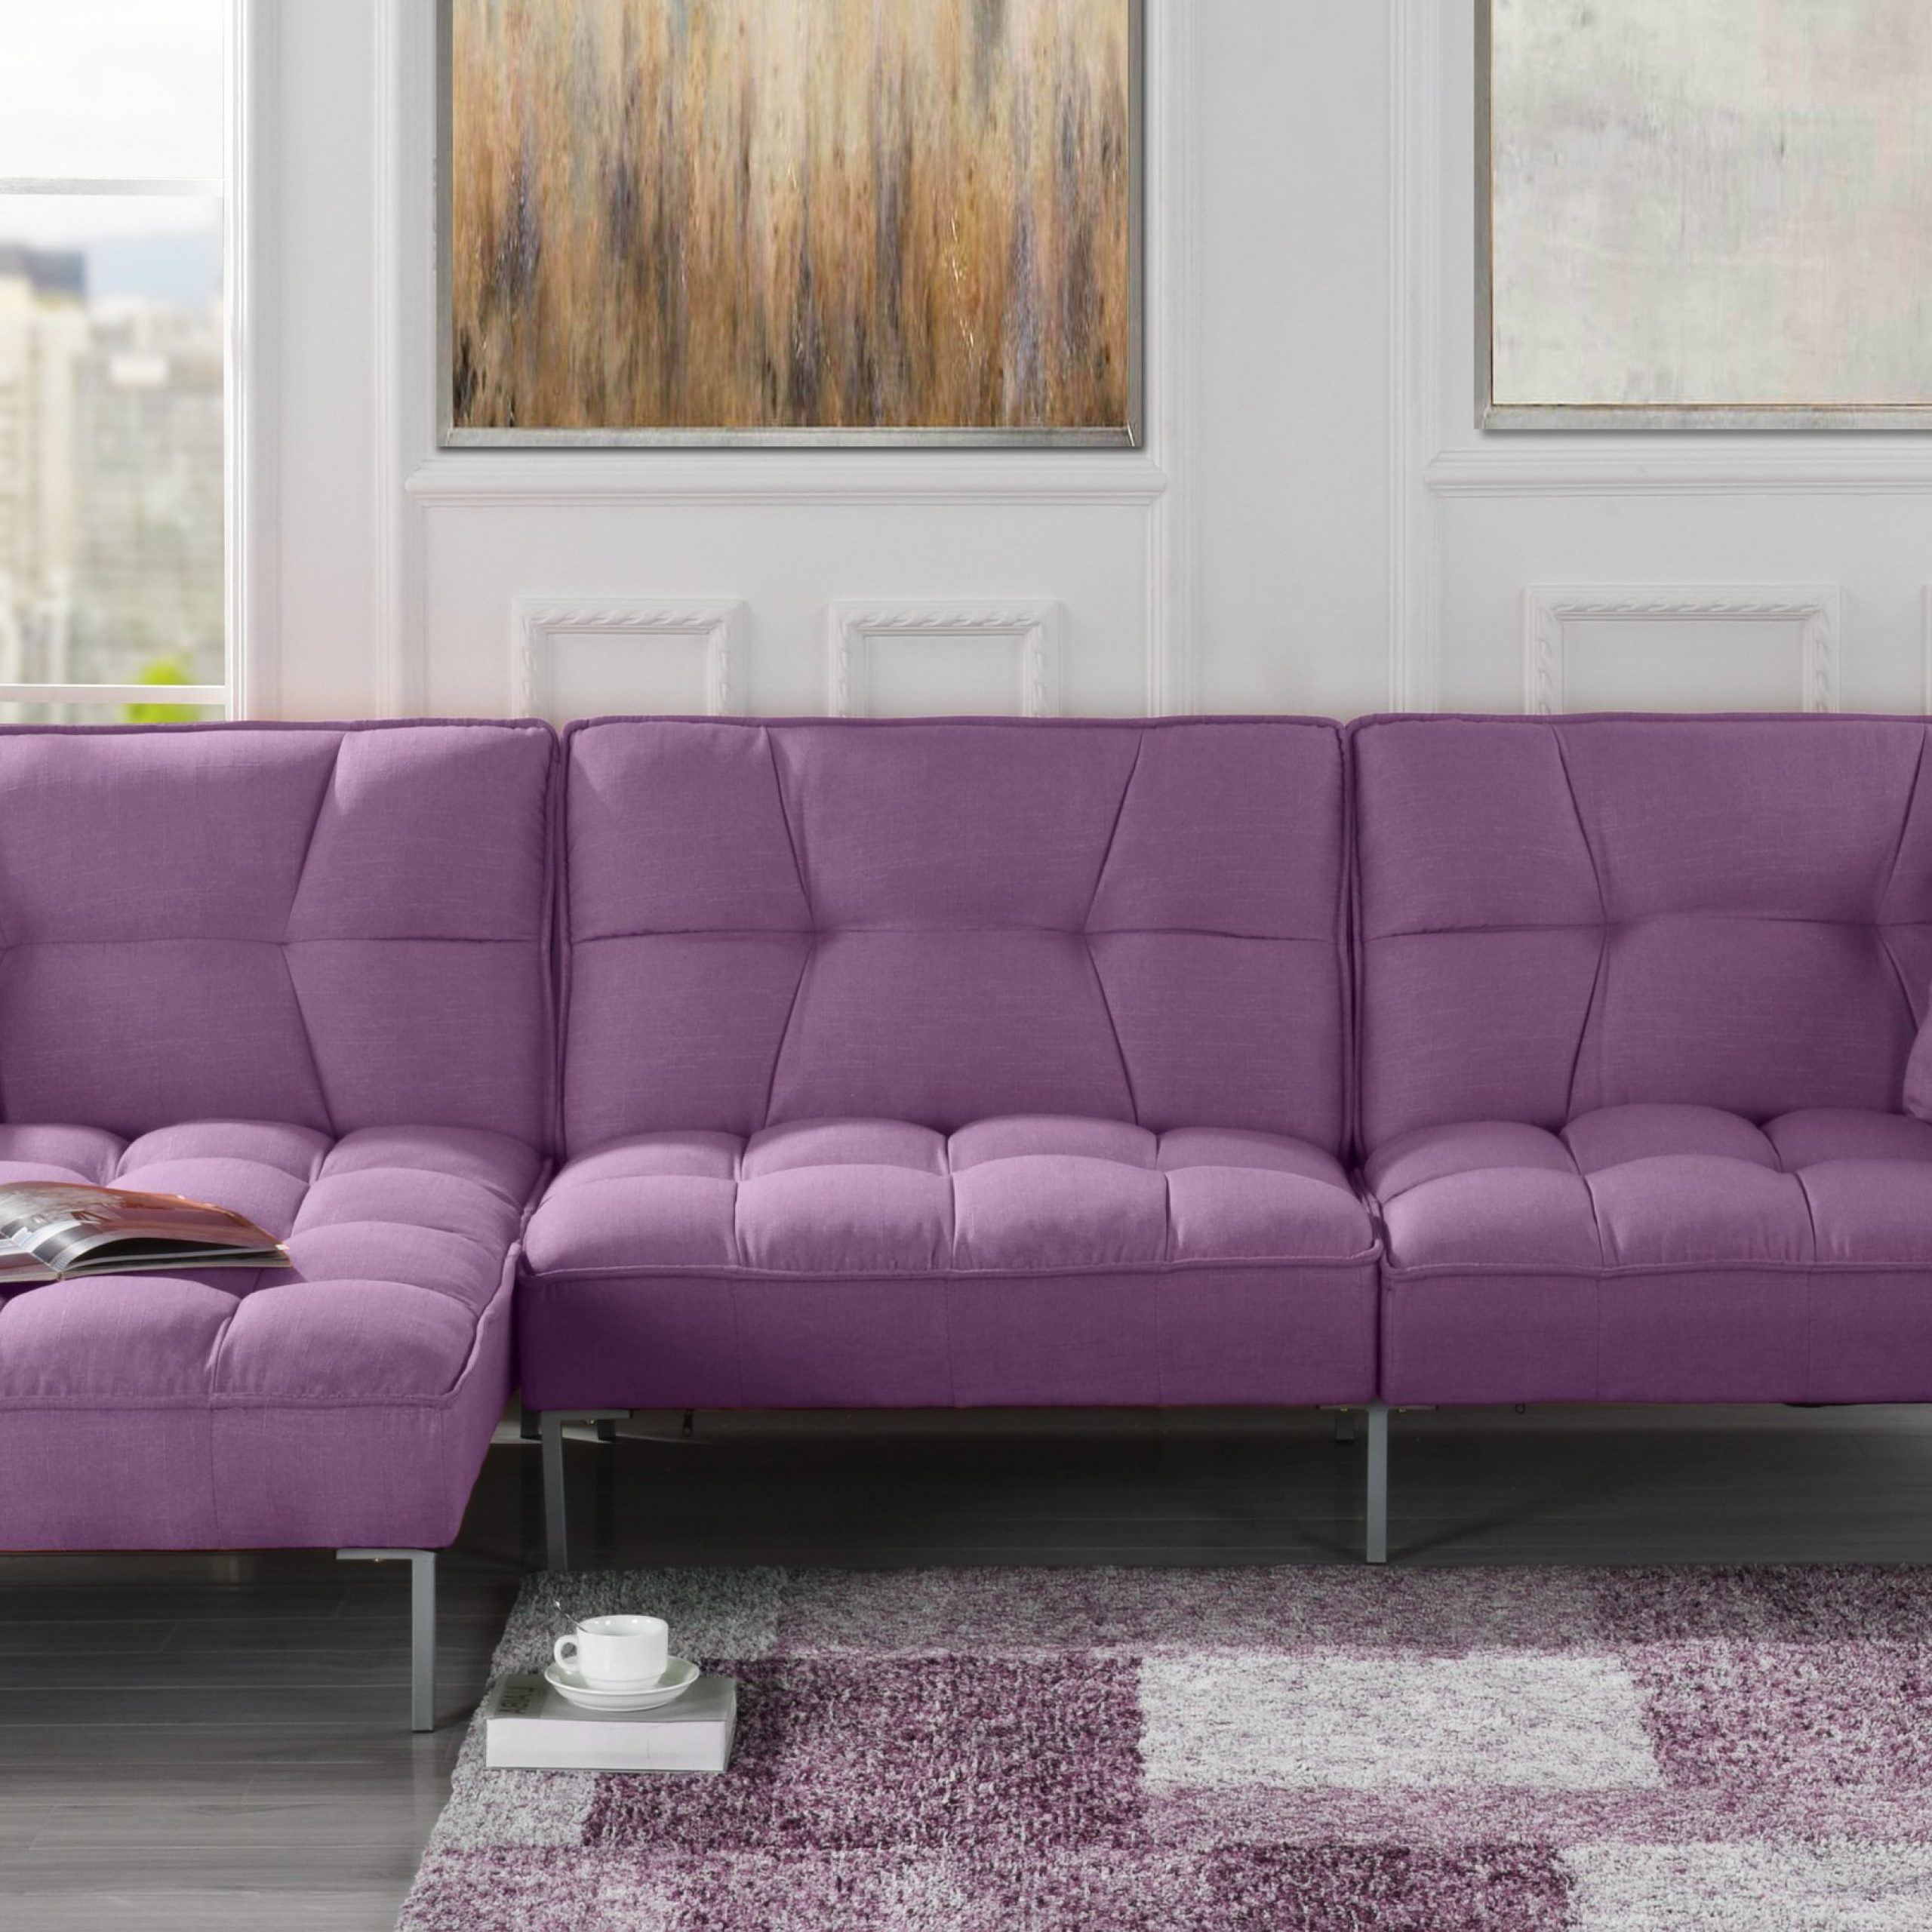 Mobilis Modern Square Tufted Linen Fabric Sectional Sofa Within Newest 4Pc Crowningshield Contemporary Chaise Sectional Sofas (View 5 of 25)